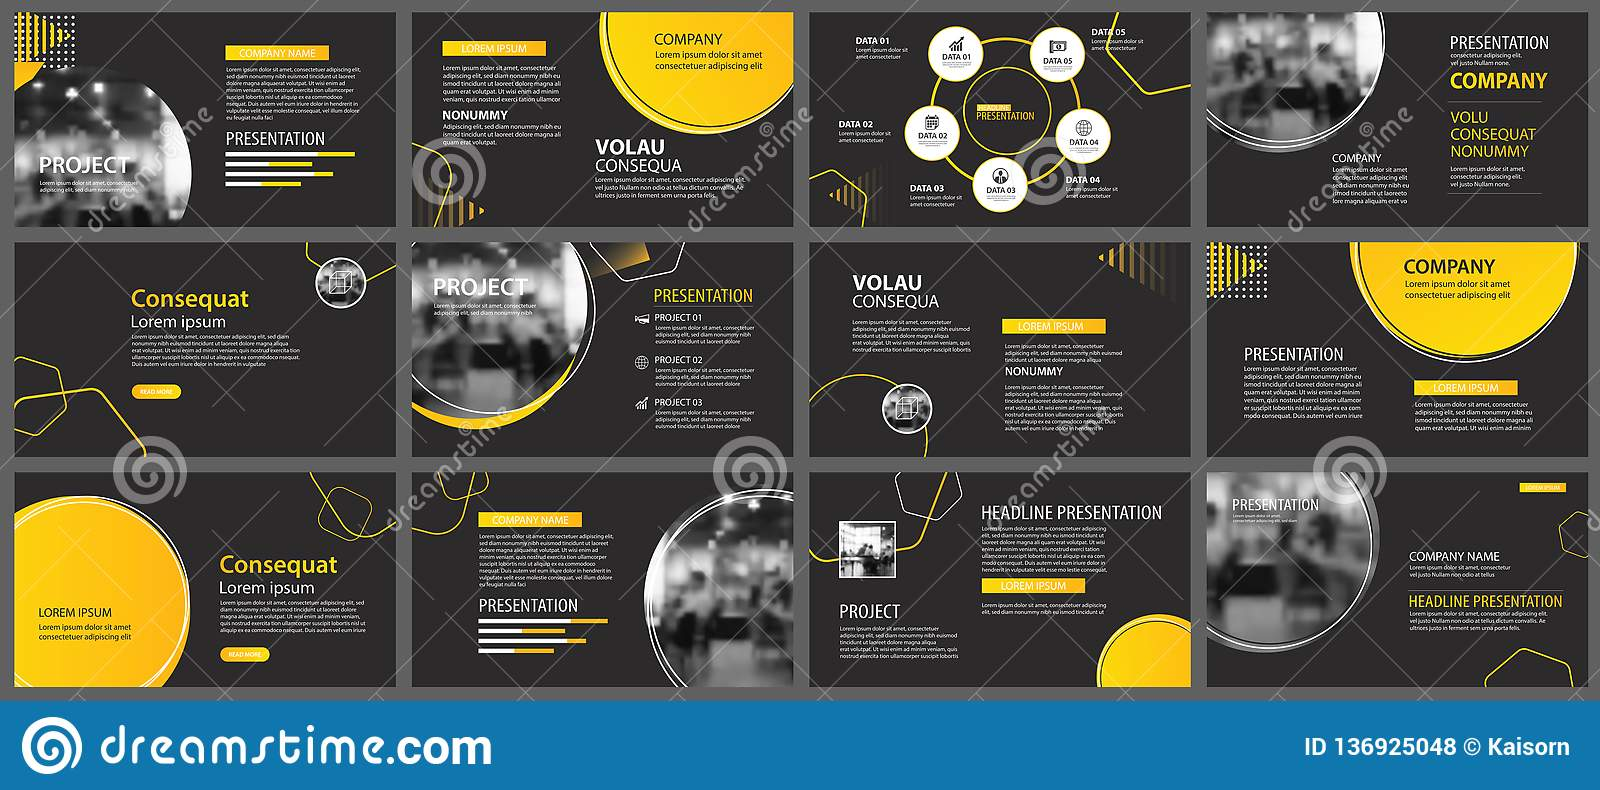 presentation and slide layout background  design yellow and black circle template  use for